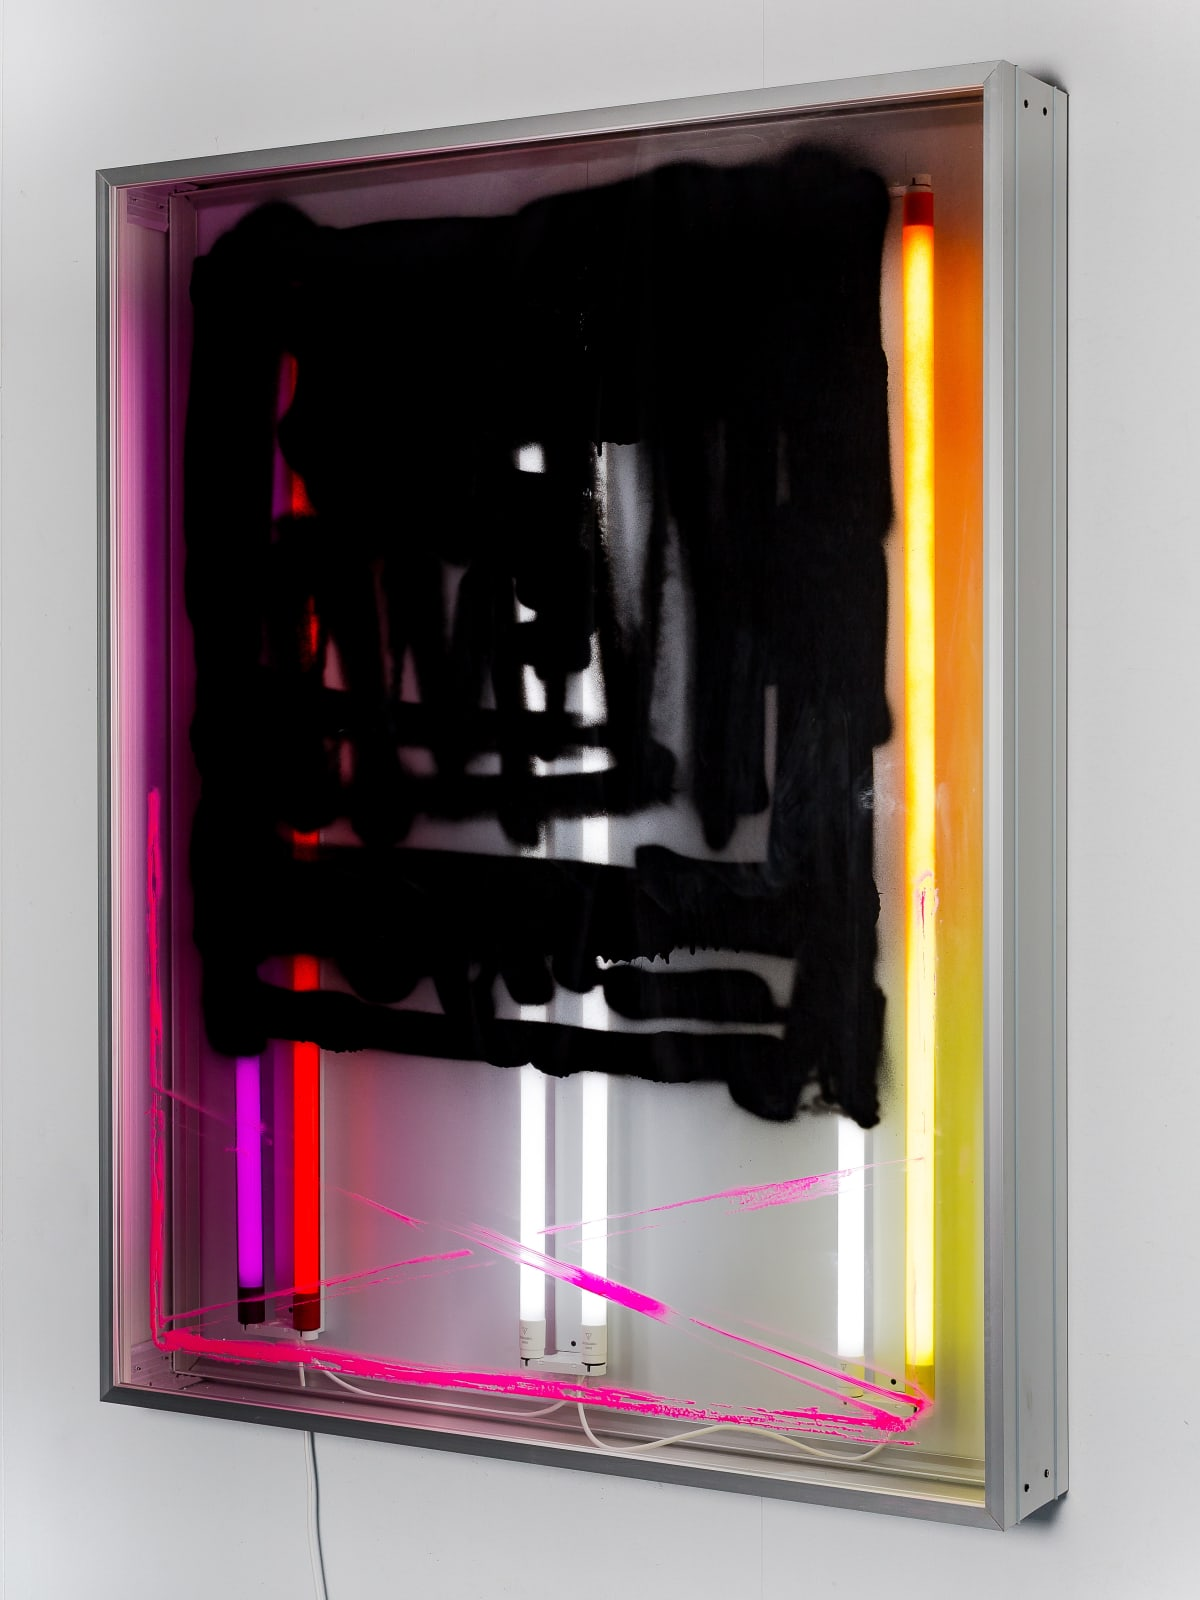 Thomas van Linge, (a) Untitled (Mirror Box), 2019